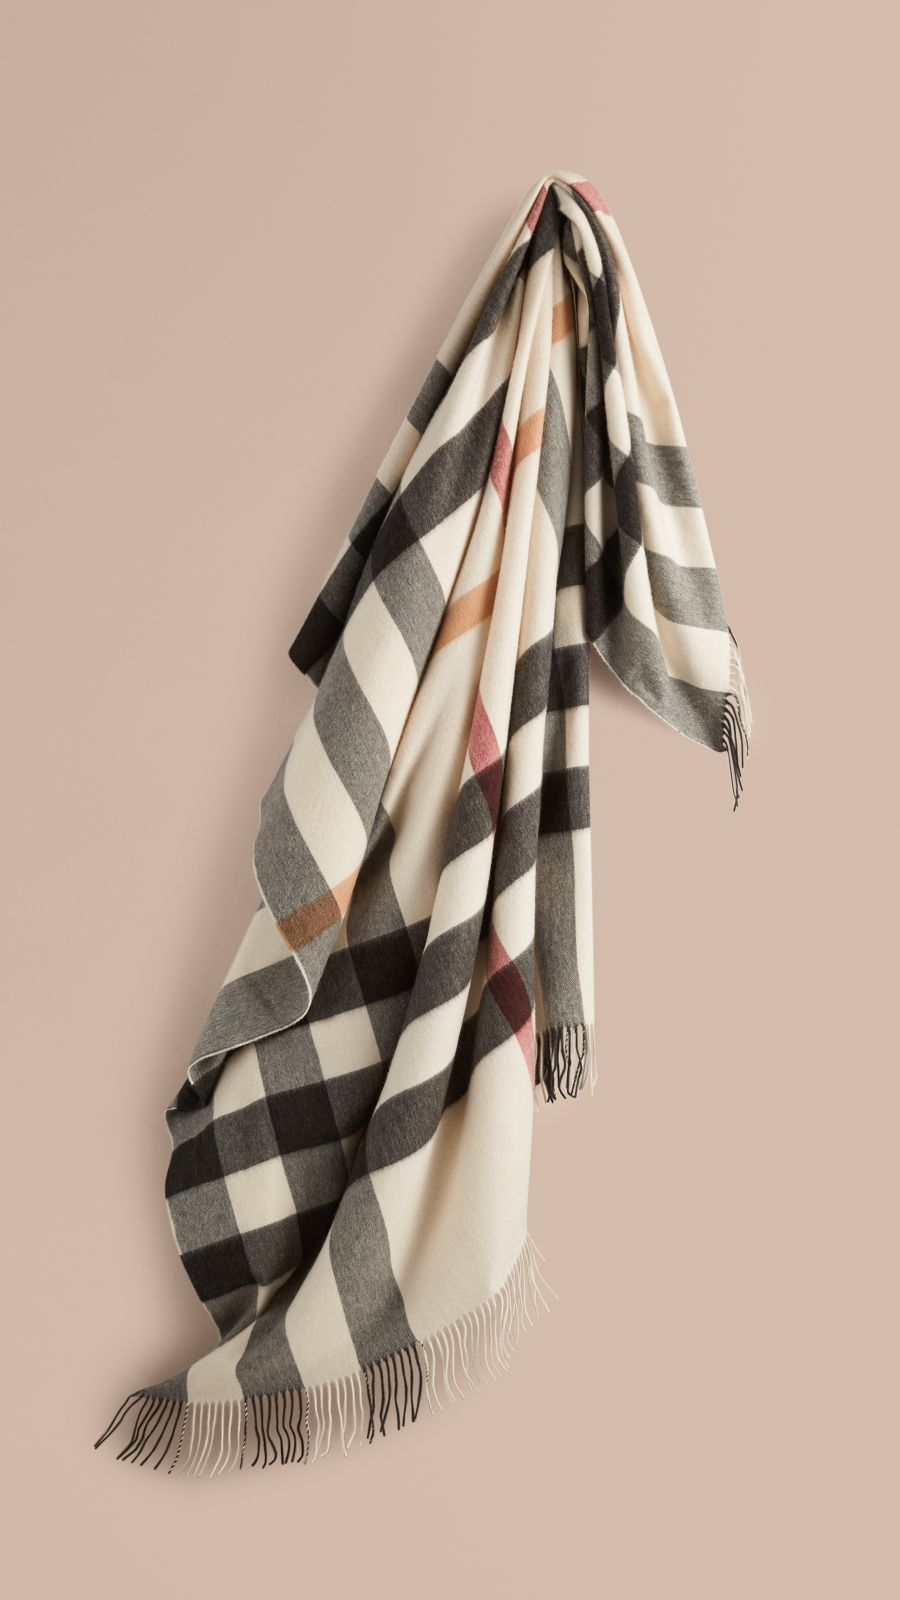 Ivory check Check Cashmere Blanket - Image 1